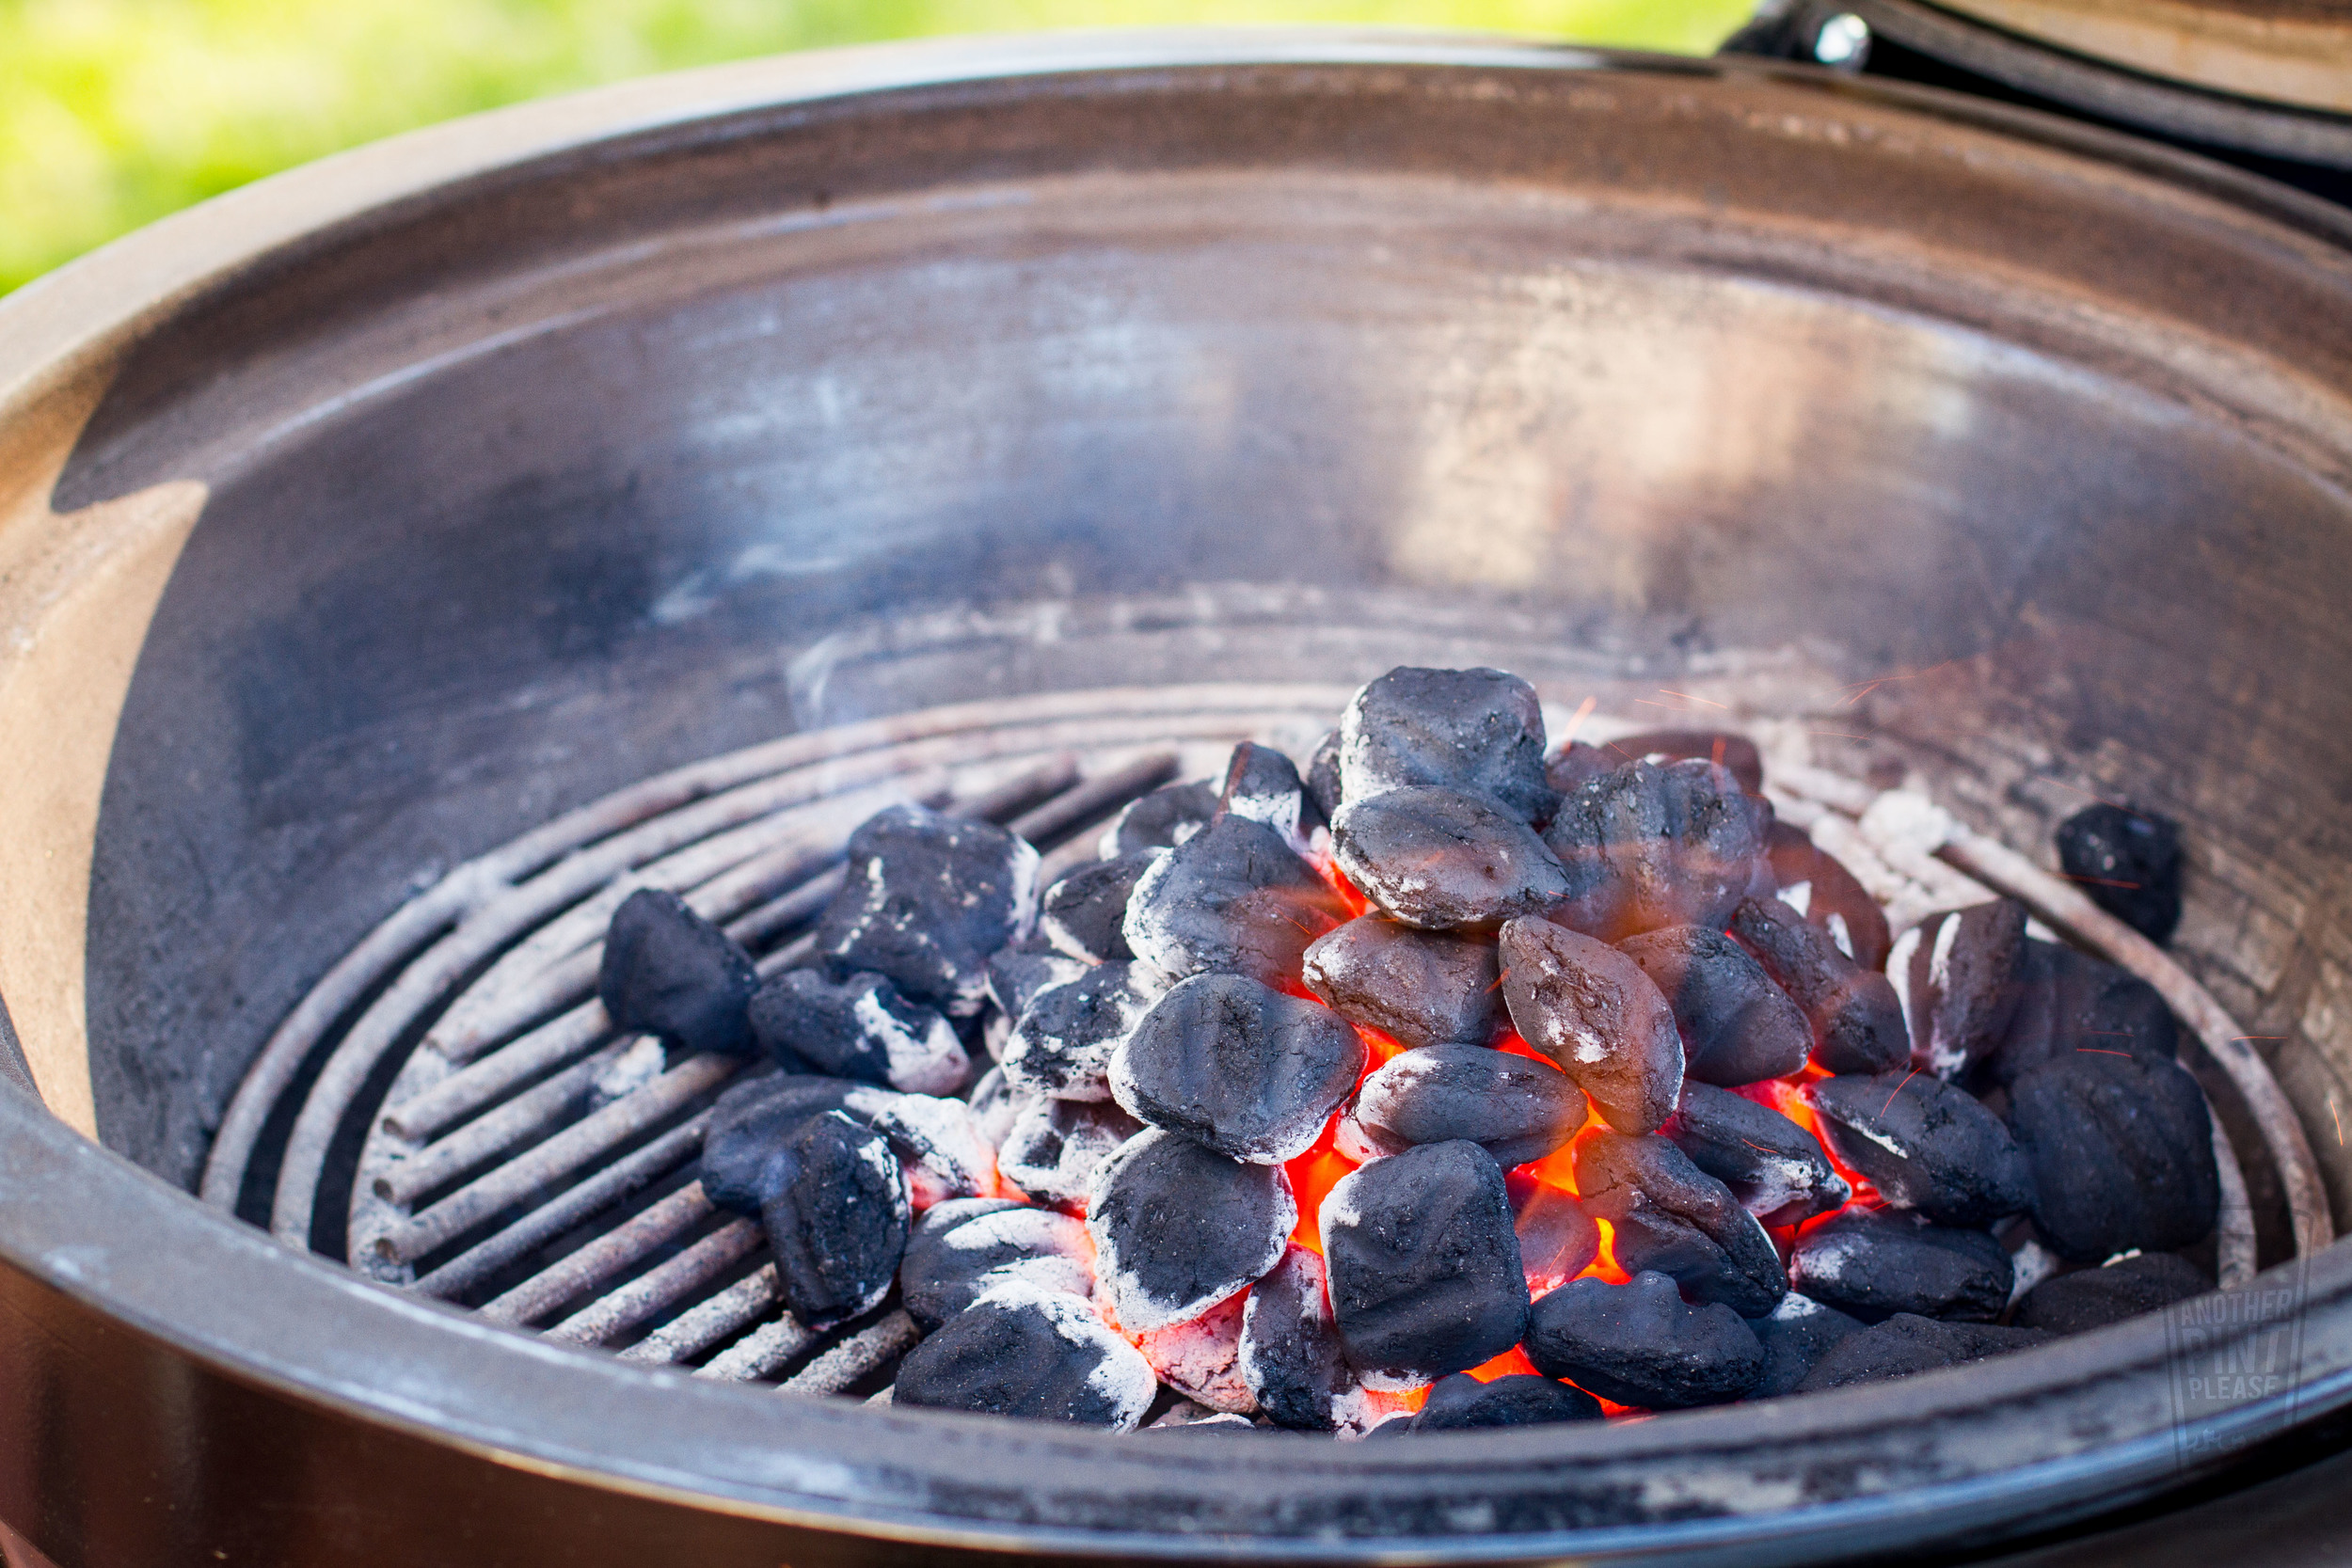 Charcoal in Weber Summit Charcoal Grill.jpg